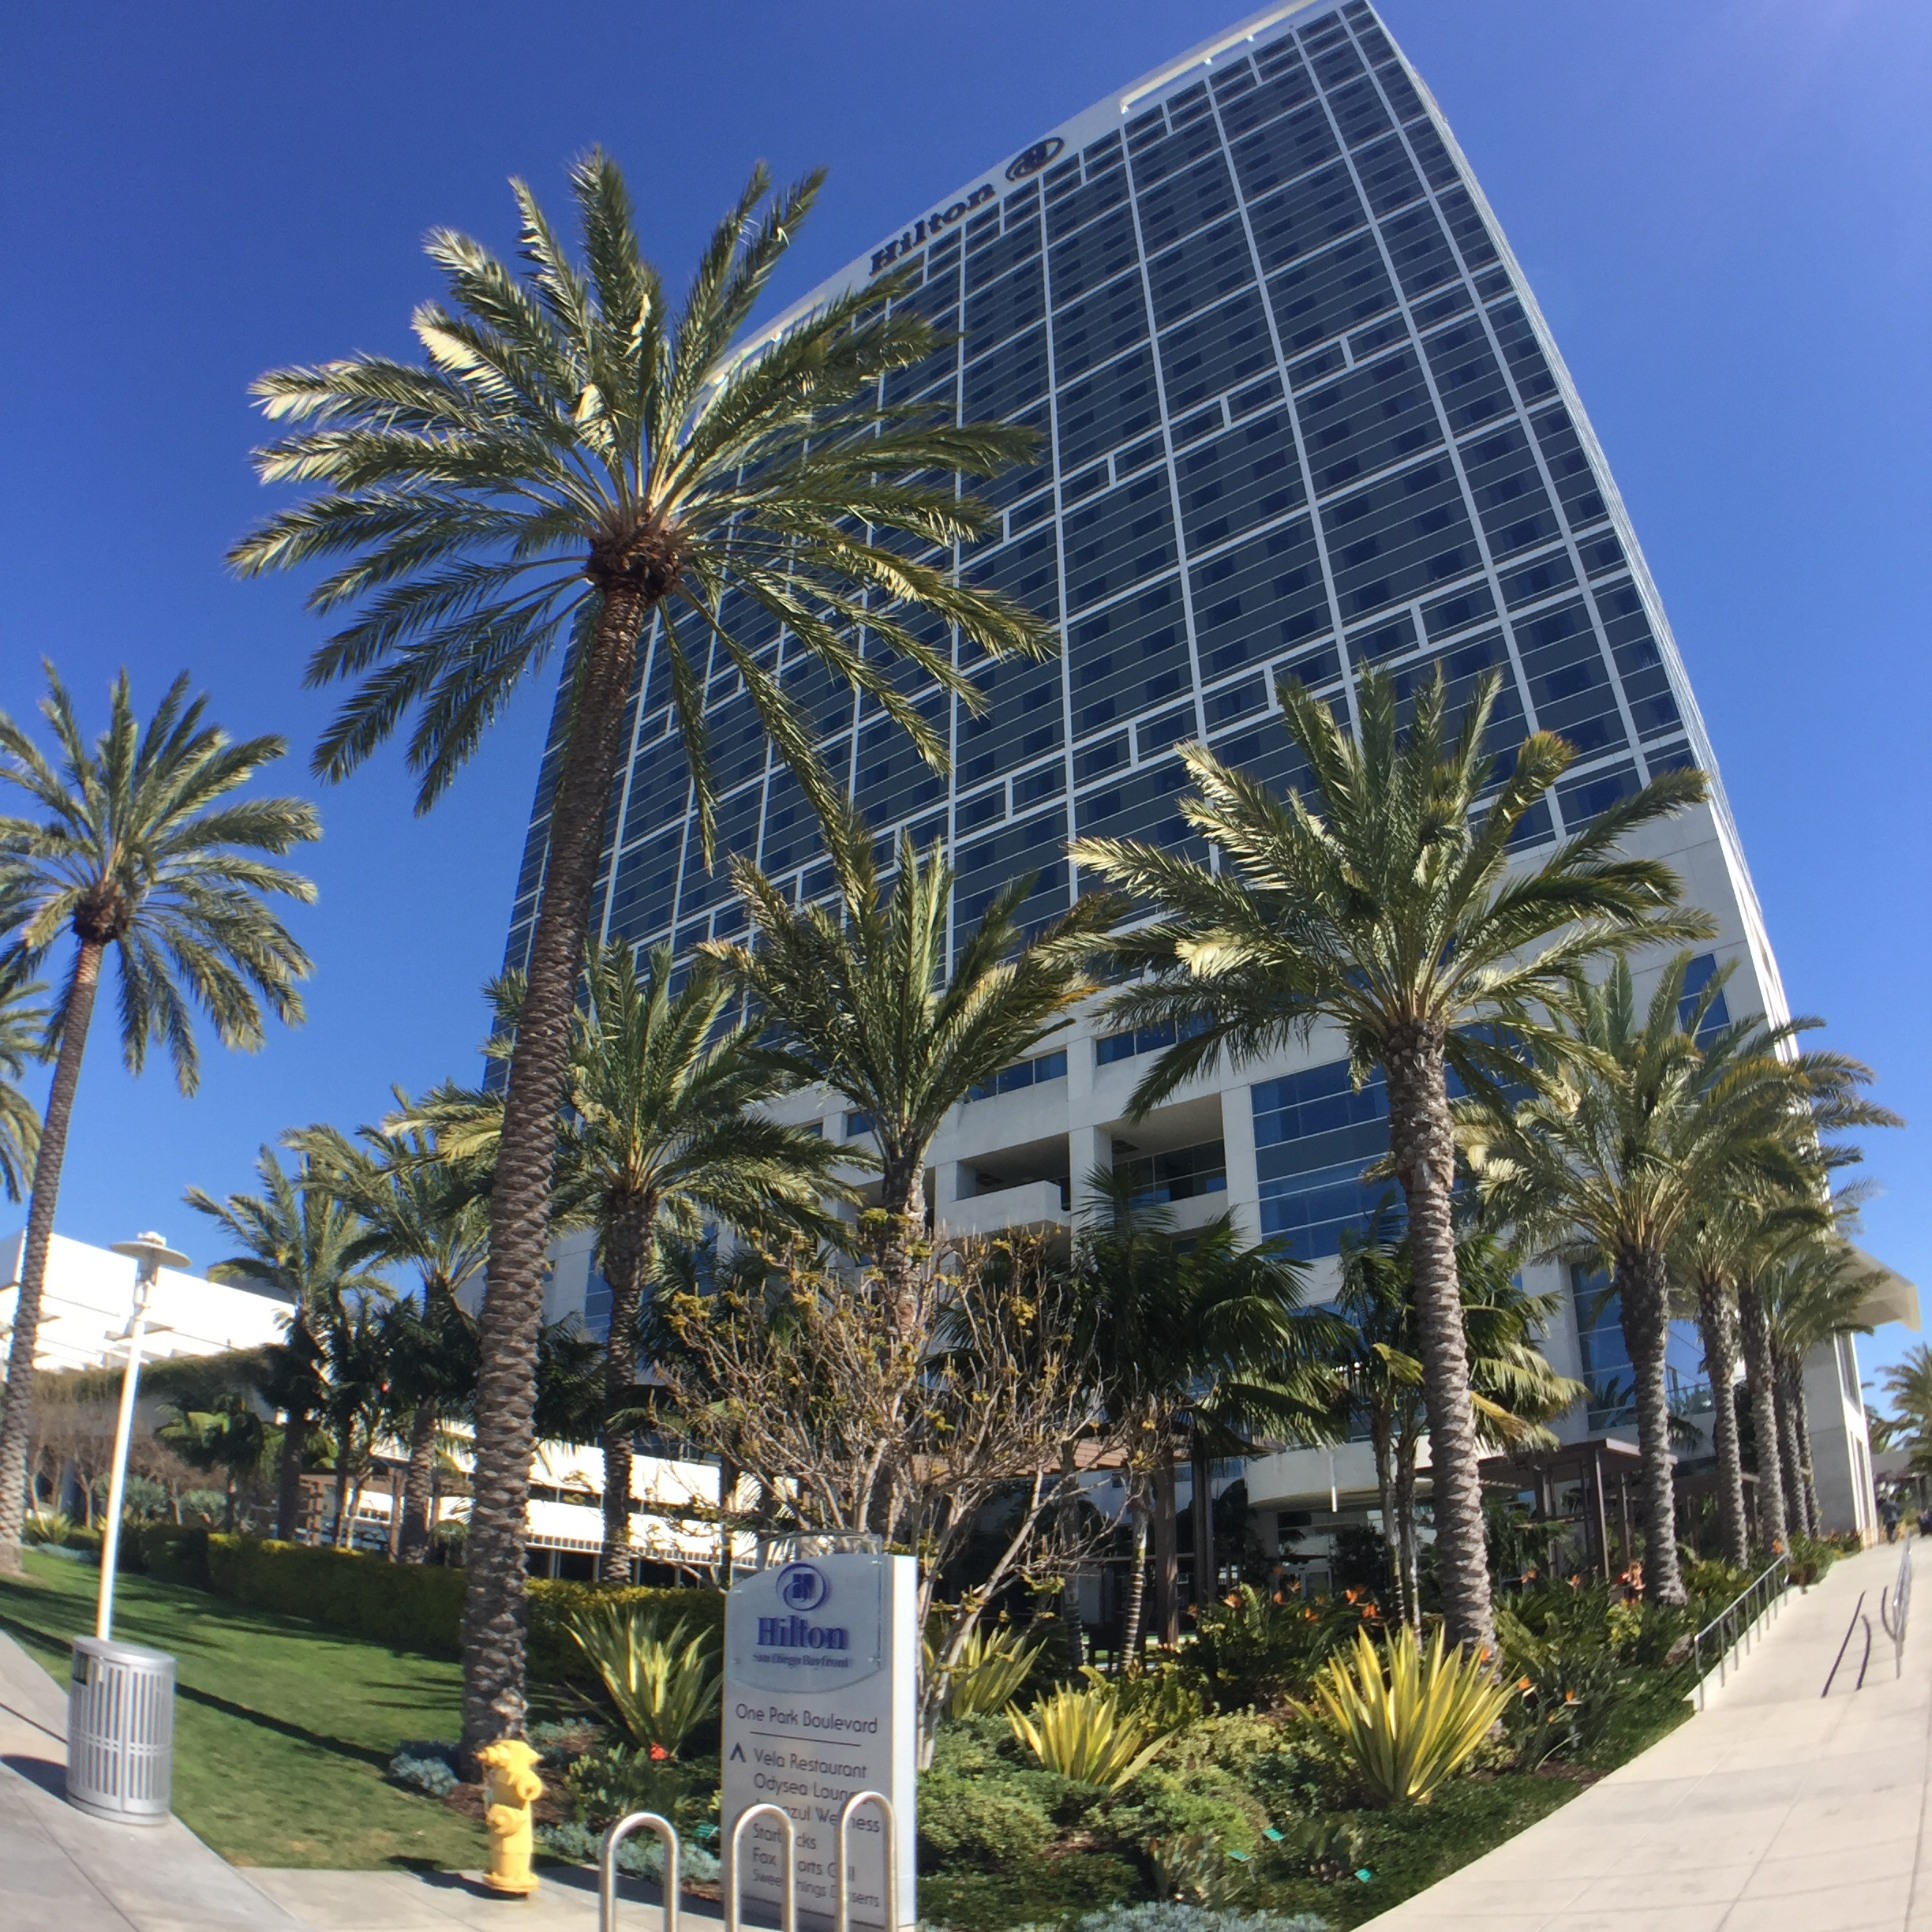 Palm trees welcomed us to the Hilton Bayfront,situated just outside the San Diego Convention Center and across from Petco Park (home of the Padres).